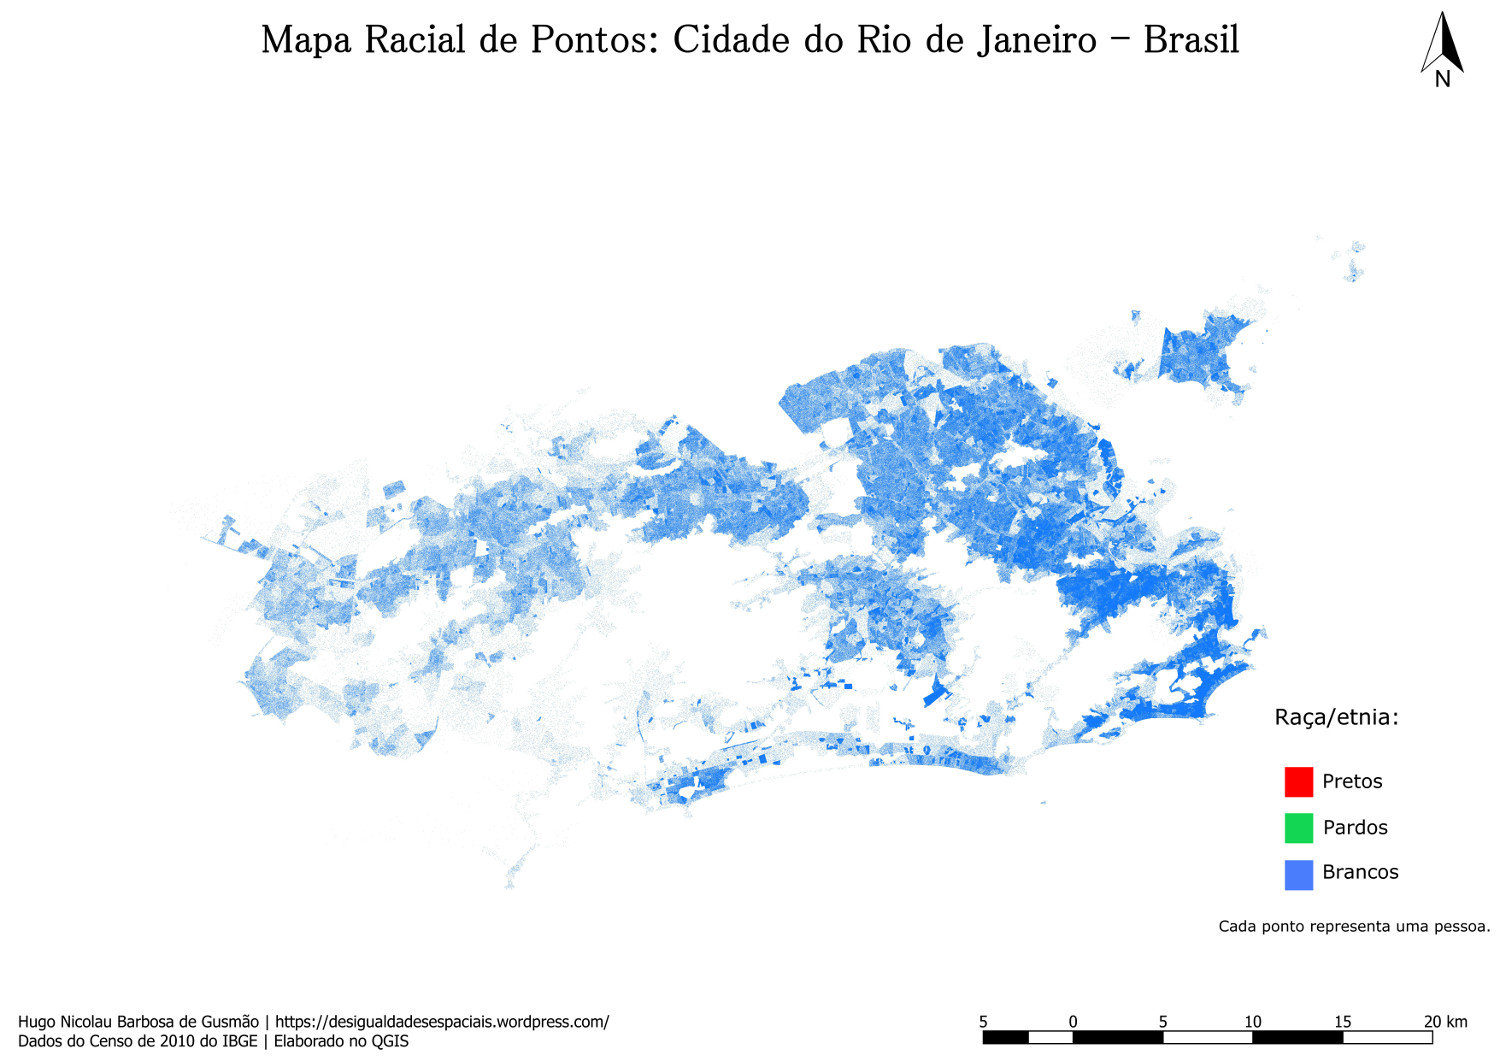 Map showing distribution of whites in the city of Rio de Janeiro